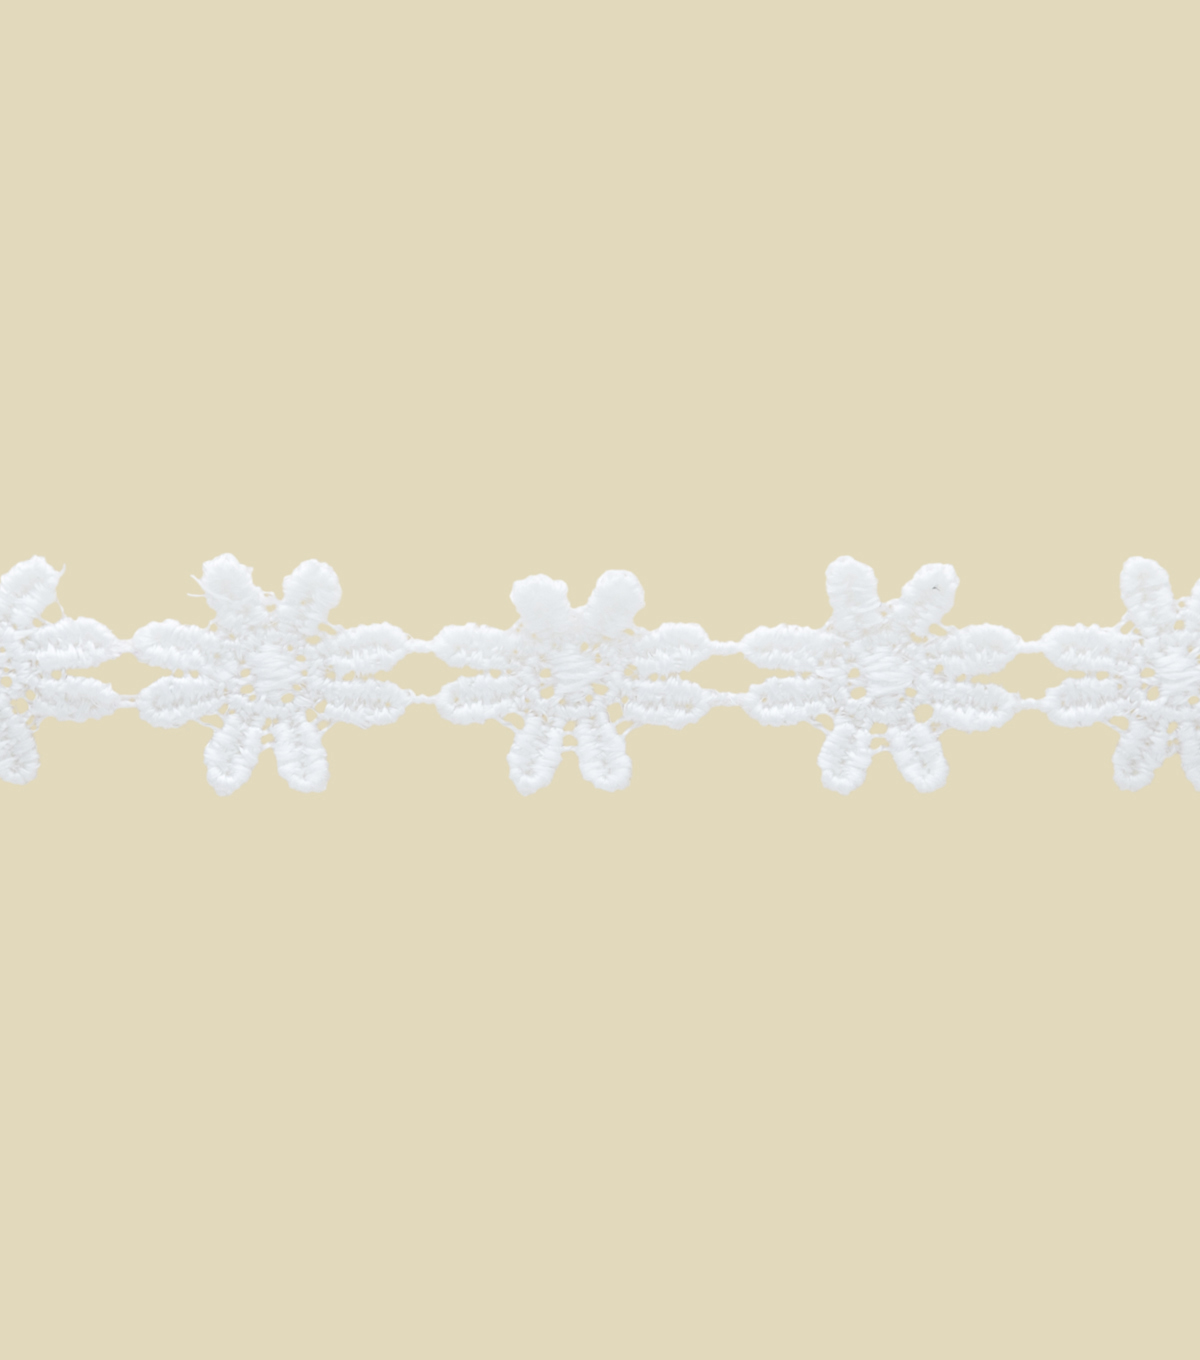 Daisy Chain 6Ft White Apparel Trim